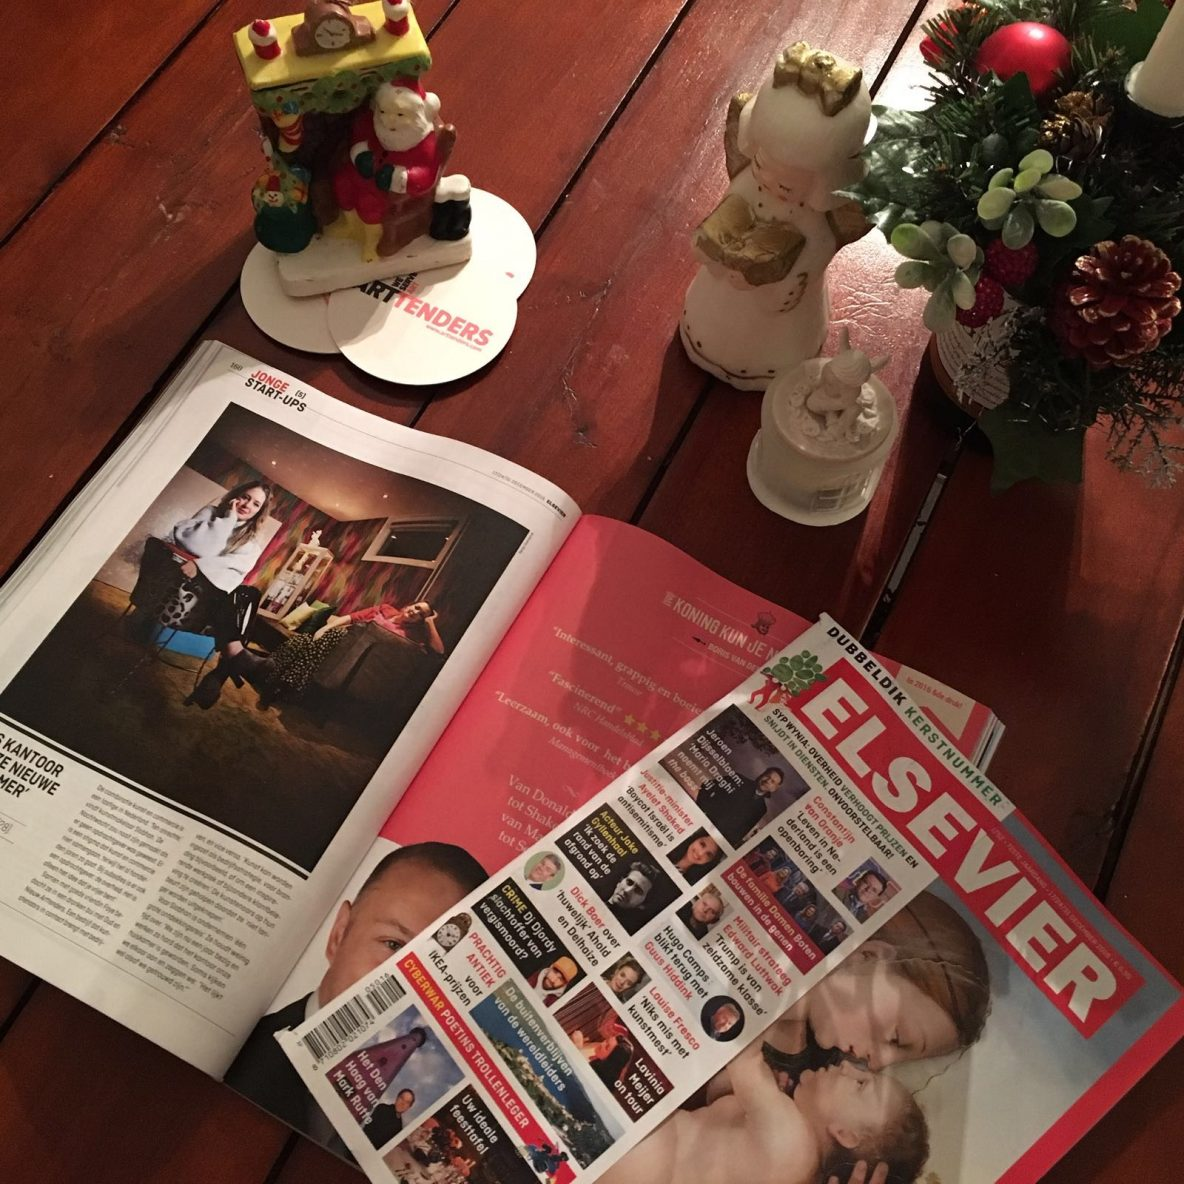 Arttenders' founders Siobhan Burger and Faye Ellen are featured in the special Christmas edition of Elsevier.